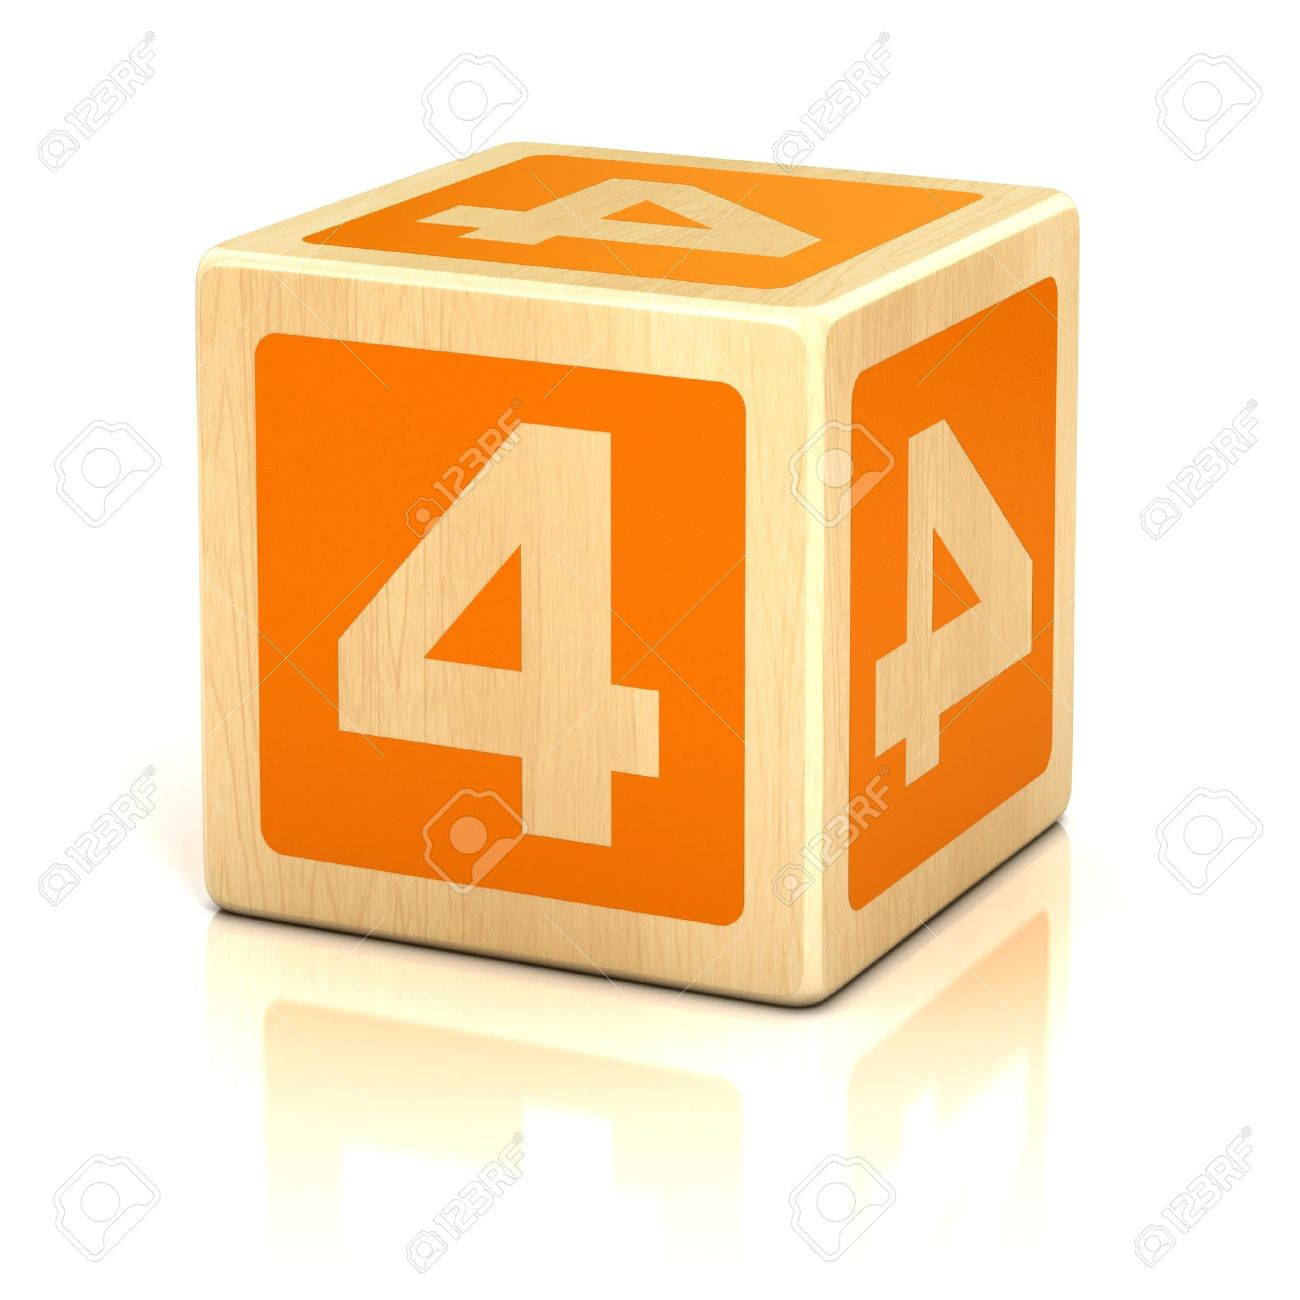 number four 4 wooden blocks font Stock Photo - 19775941